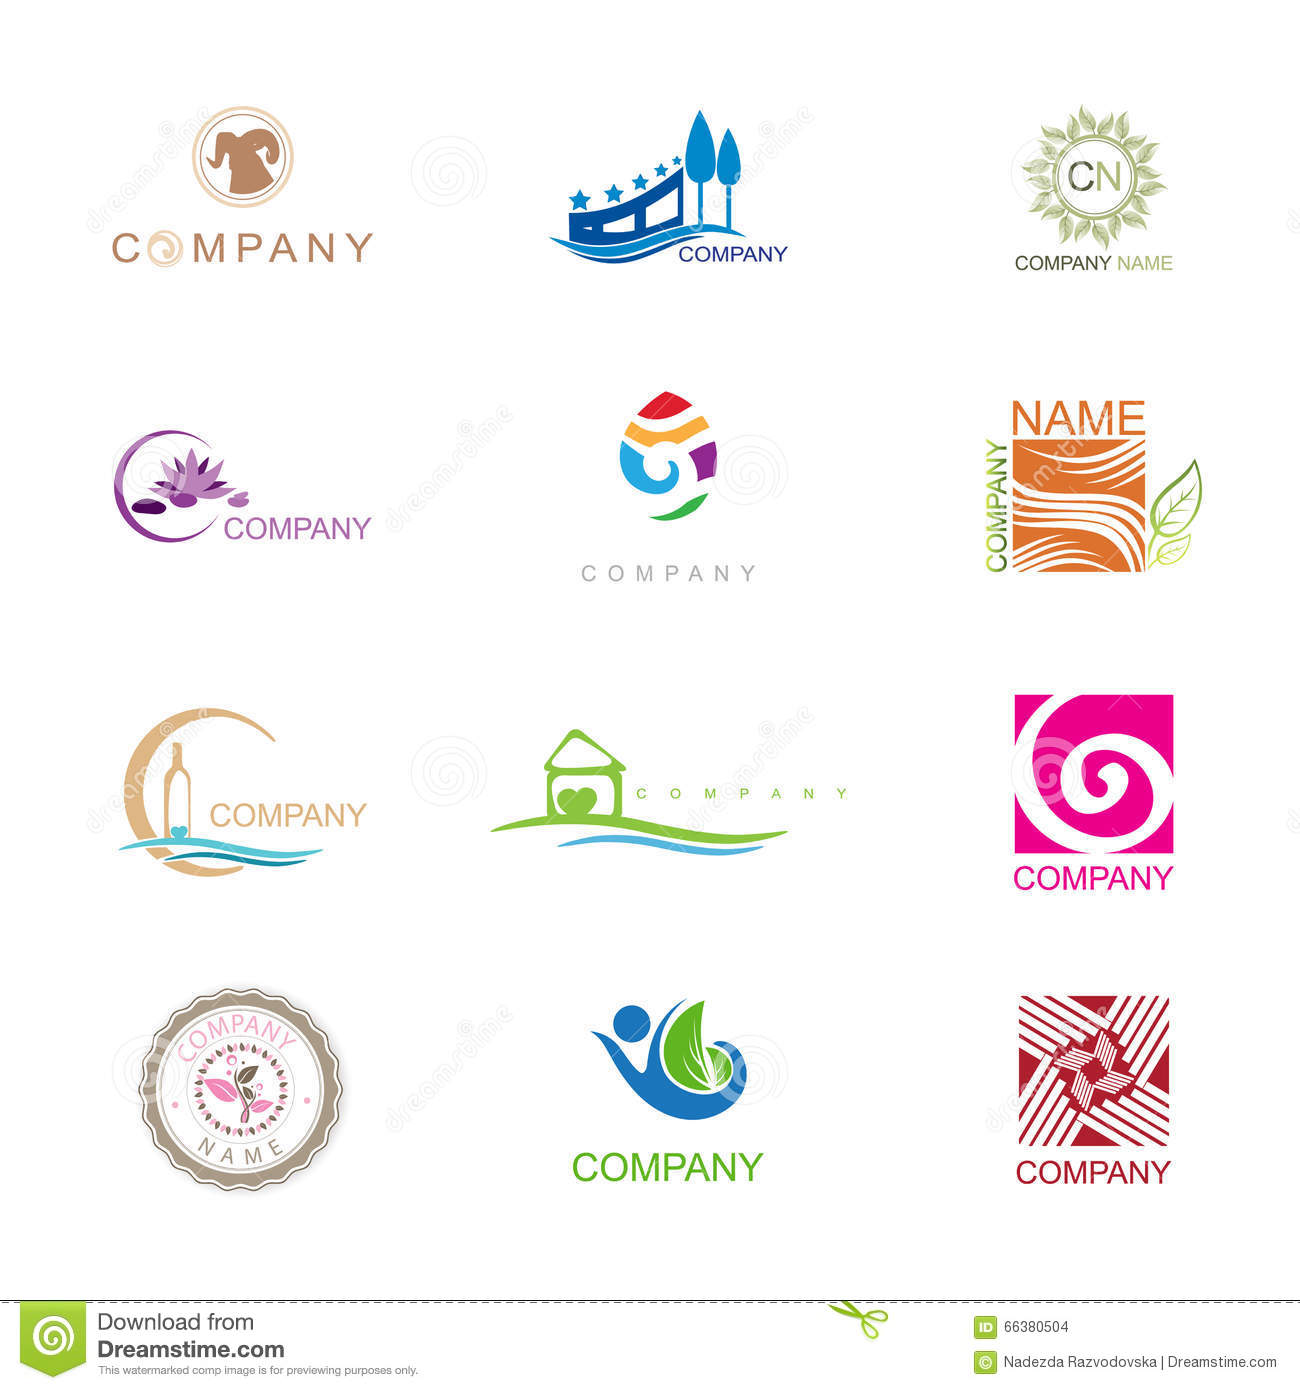 Different Logo Design Collection With Company in Free Font Arial.